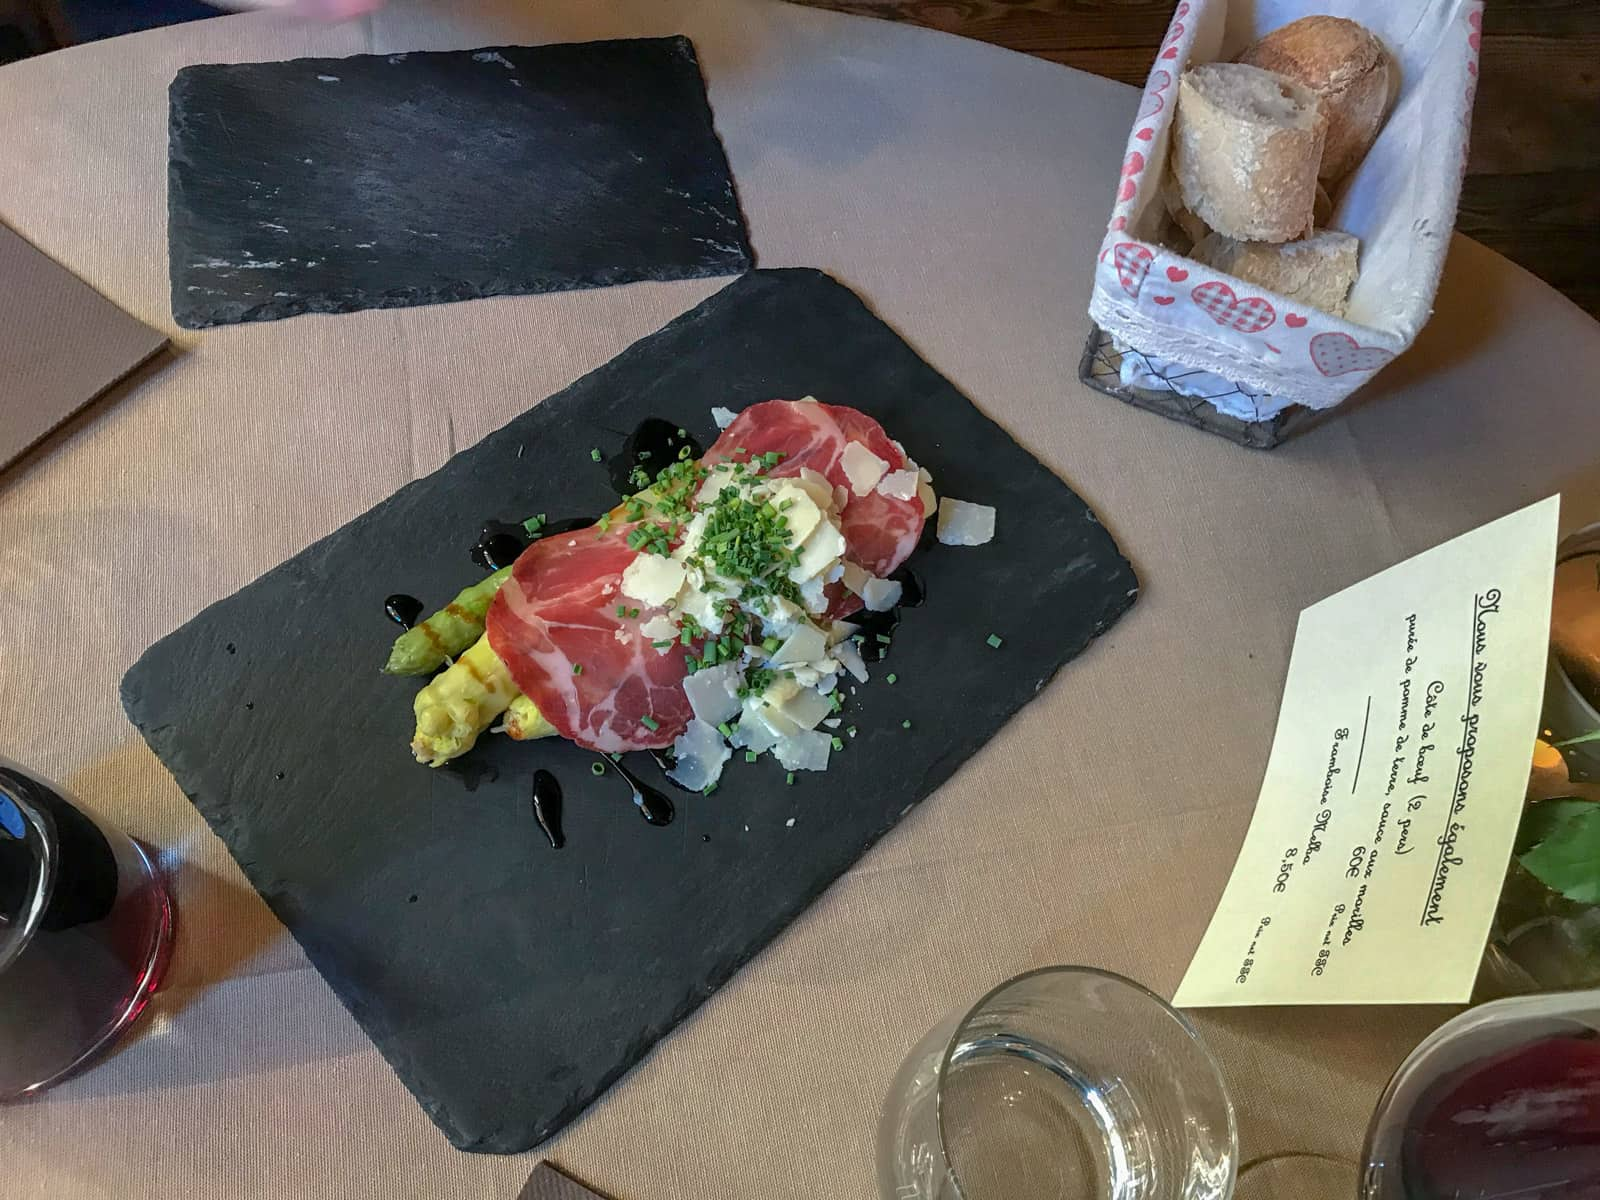 Asparagus with a slice of proscuitto and shaved cheese, presented on a black stone board on a dinner table in a restaurant